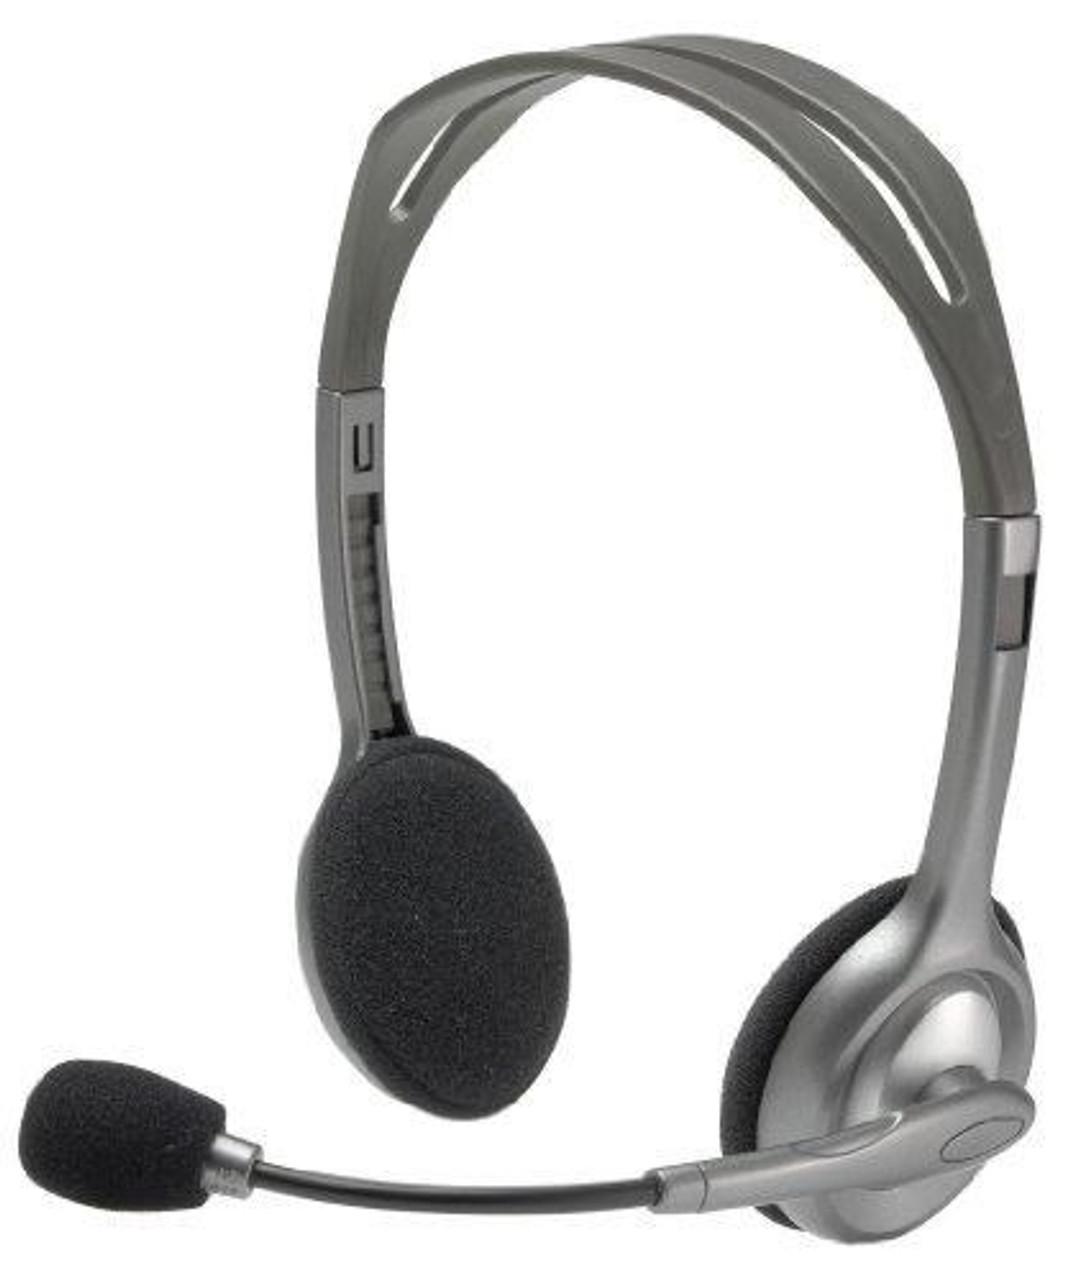 Product image for Logitech H110 Stereo Headset   CX Computer Superstore